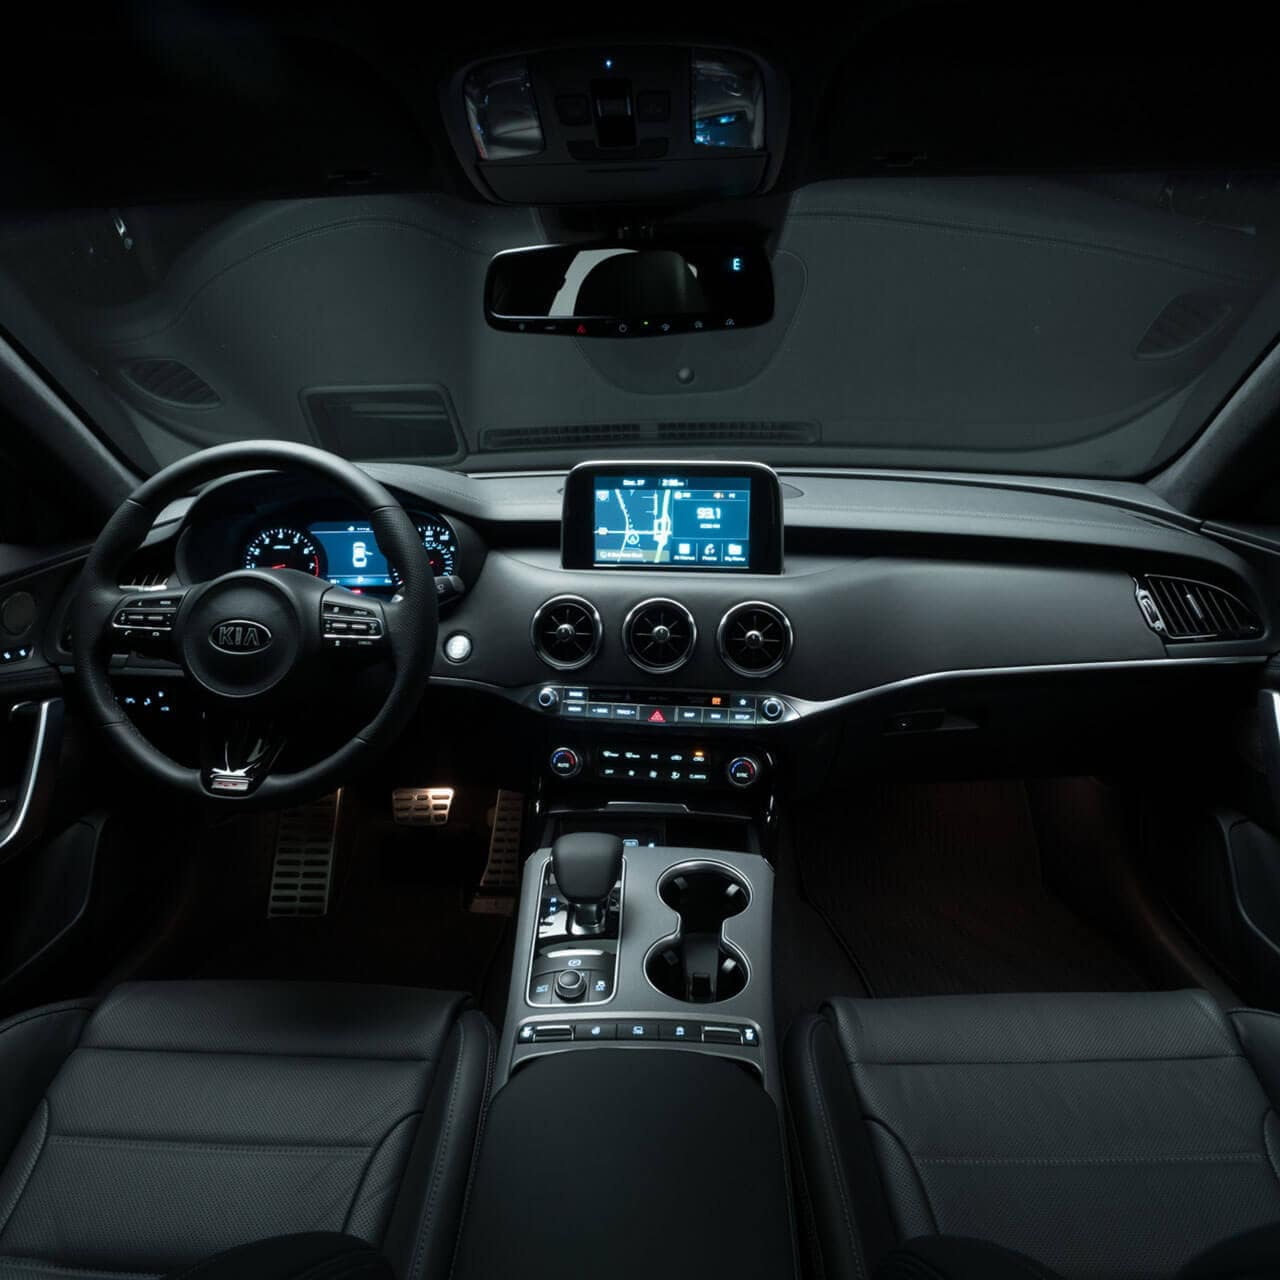 2018 Kia Stinger Interior 4